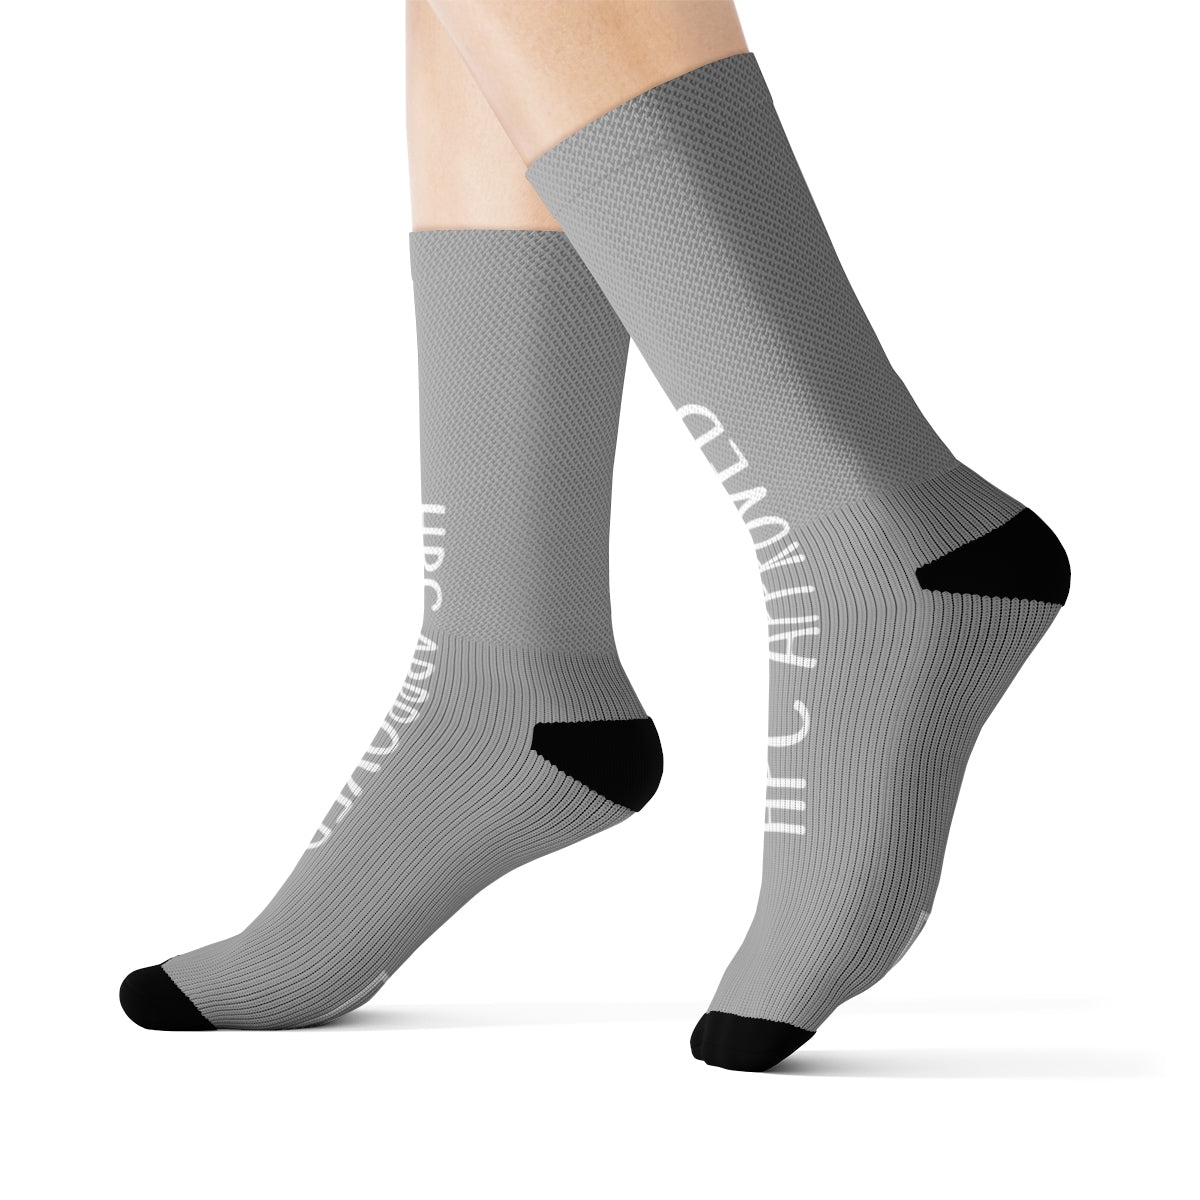 HPC Approved Socks